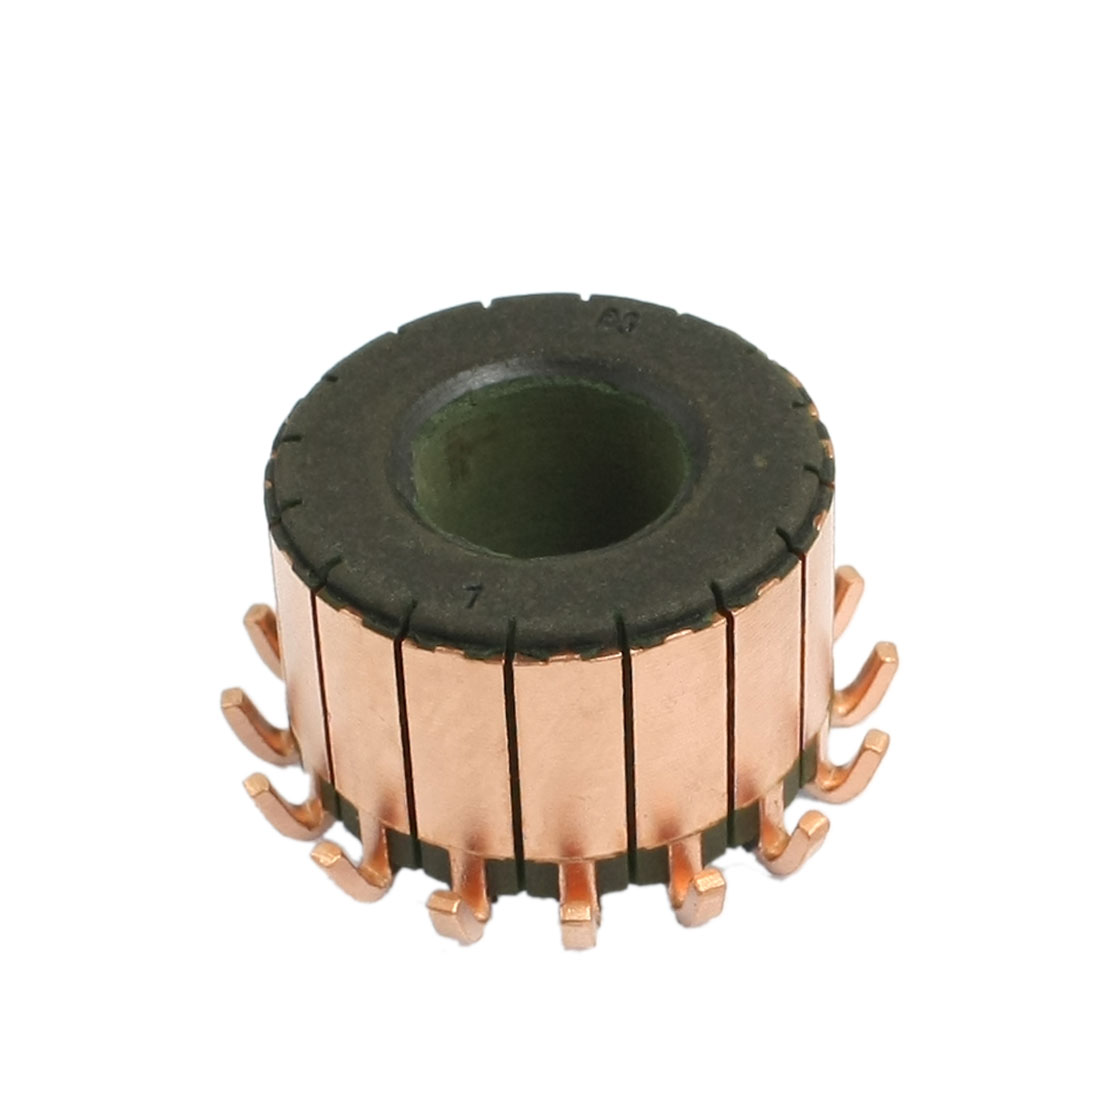 15mm x 32mm x 22mm 16 Gear Tooth Copper Shell Electric Motor Commutator